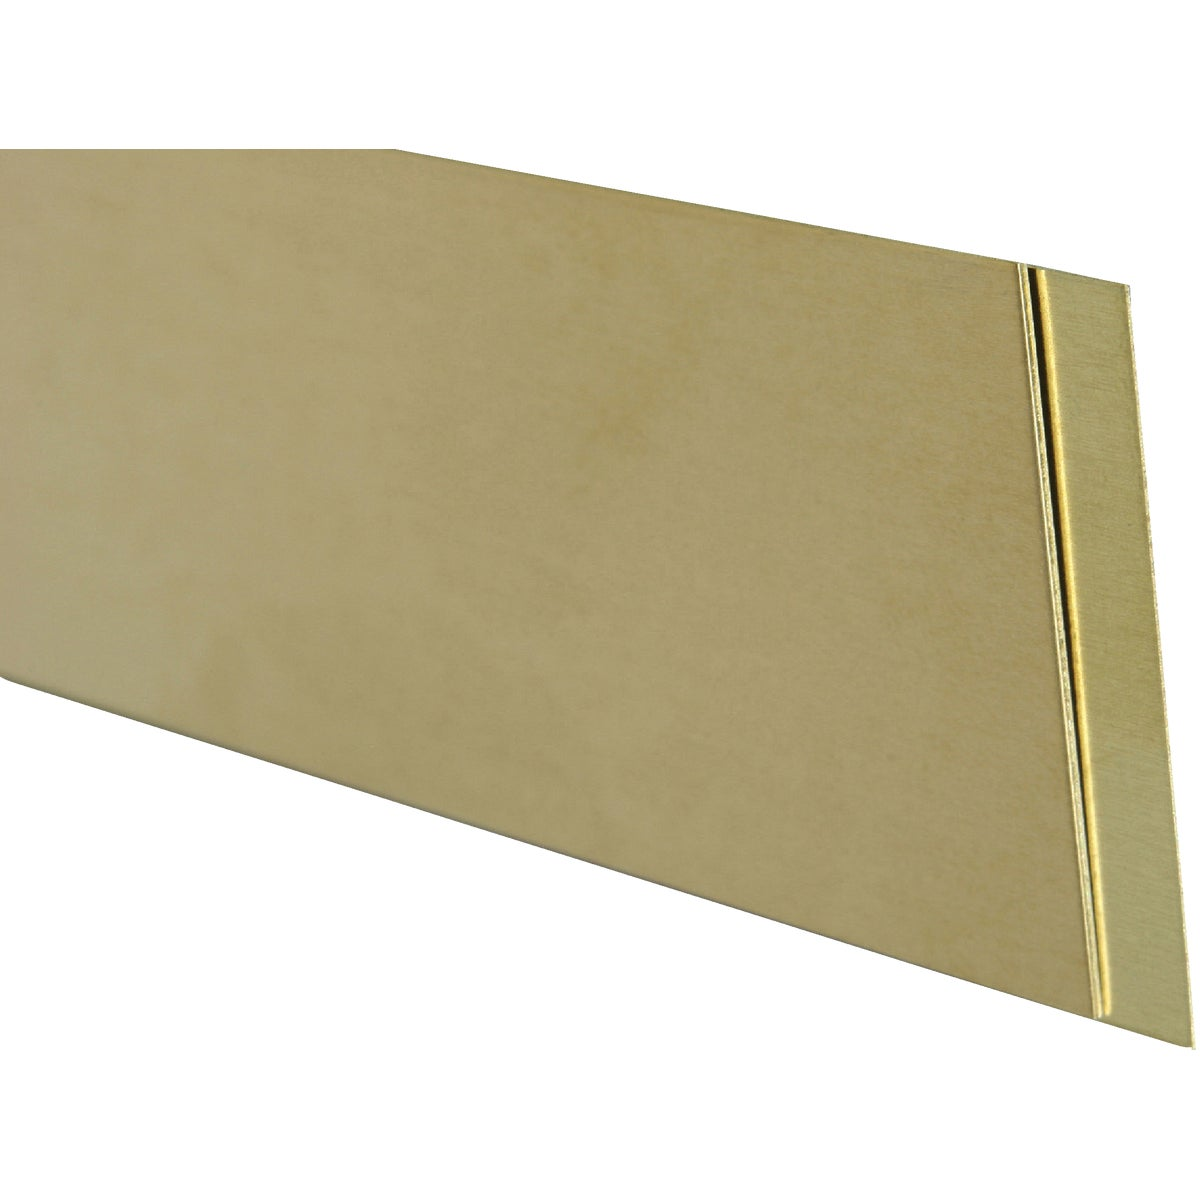 K & S Engineering .016X1X12 BRASS STRIP 232